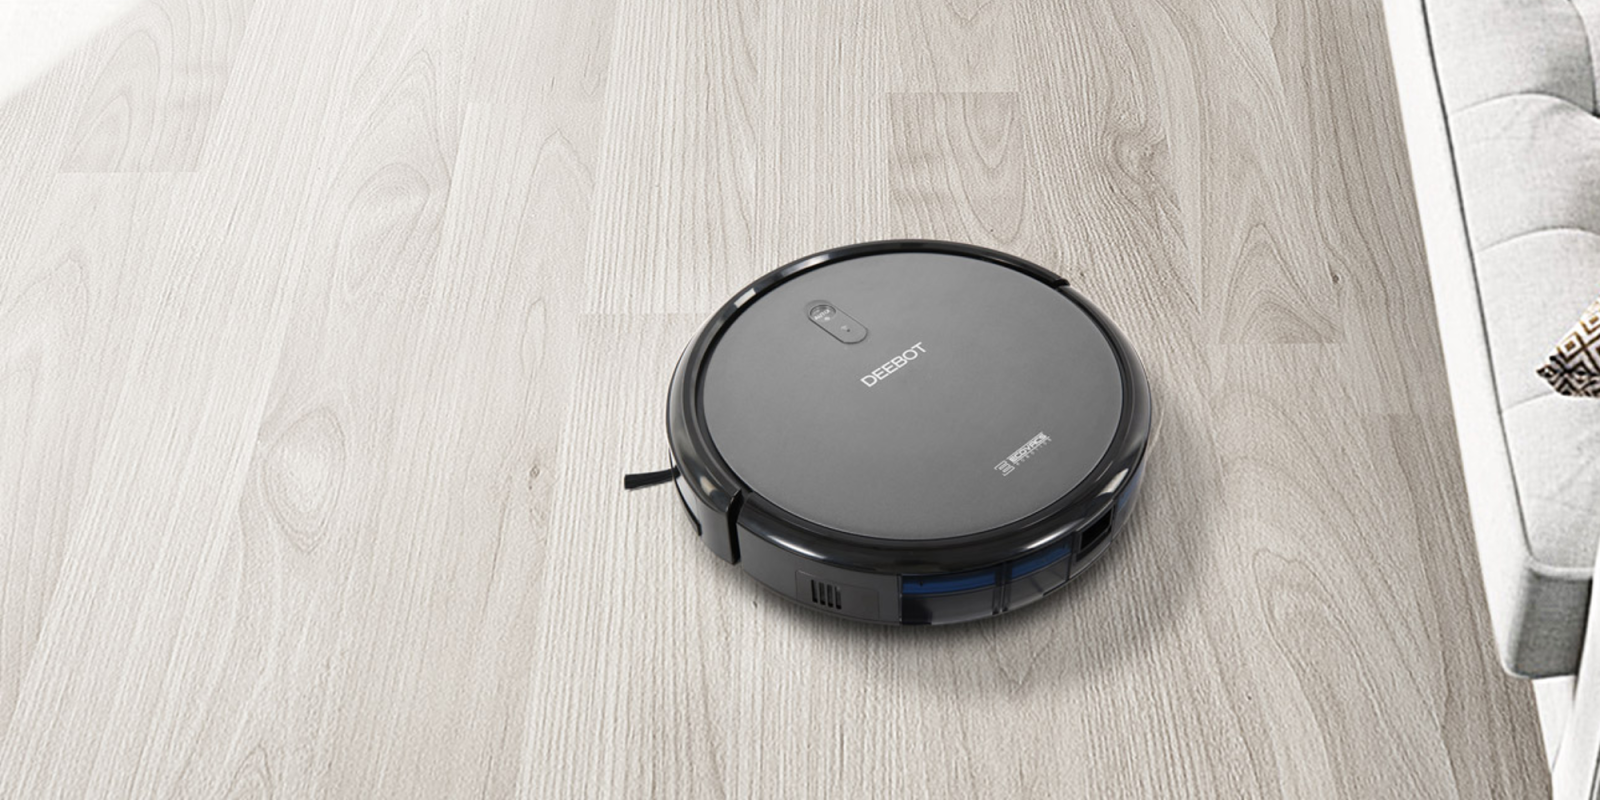 Ecovac's highly-rated N79S Robotic Vacuum falls to new Amazon low at $140 (30% off)